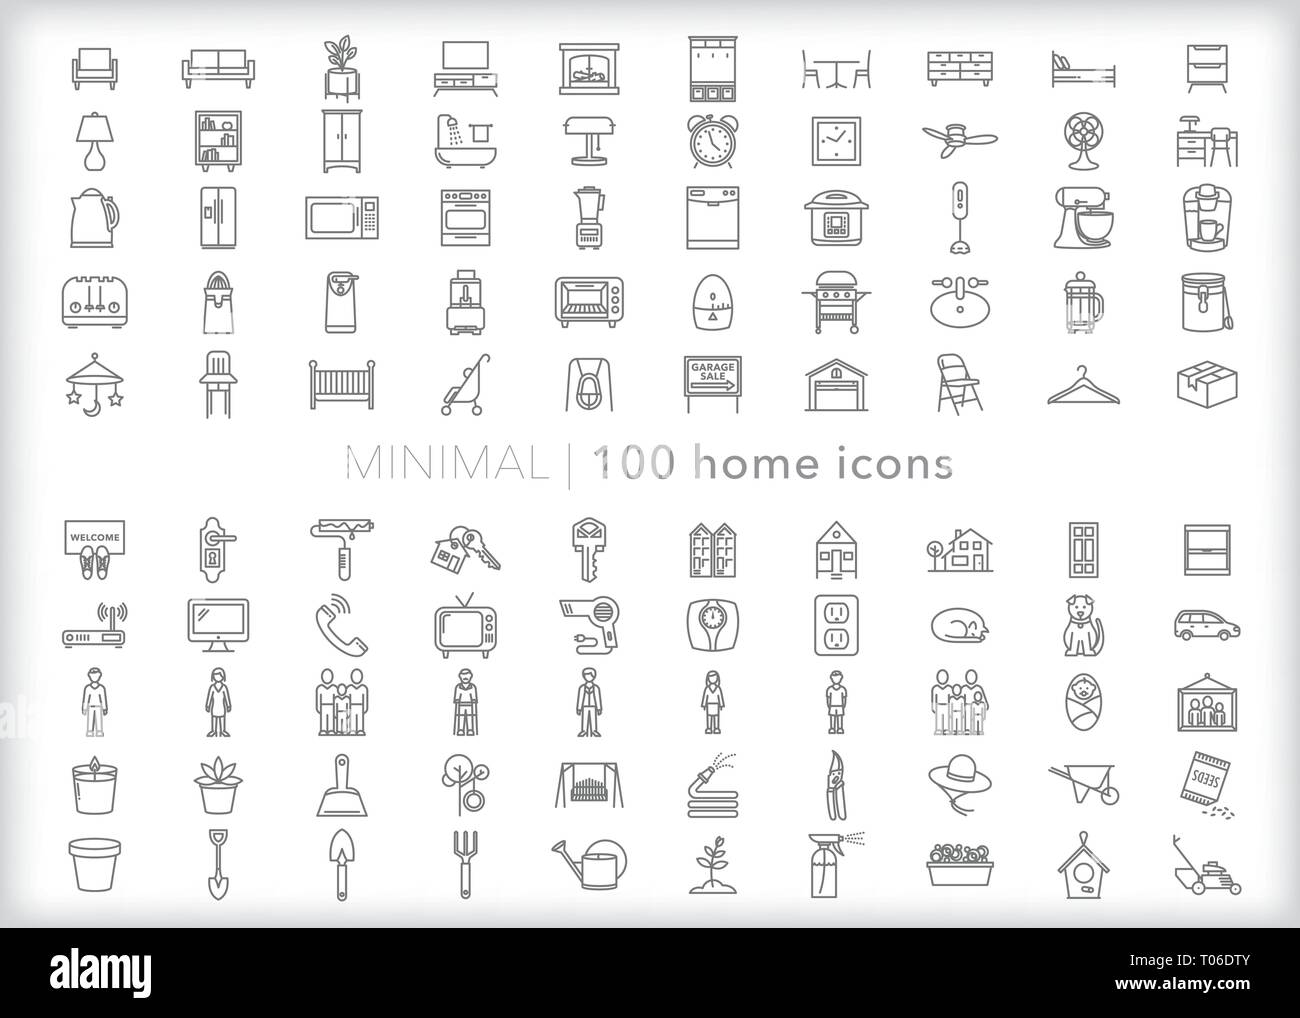 Set of 100 home line icons of furniture, decor, family, objects and appliances for the living room, bedroom, kitchen, bathroom and study - Stock Vector